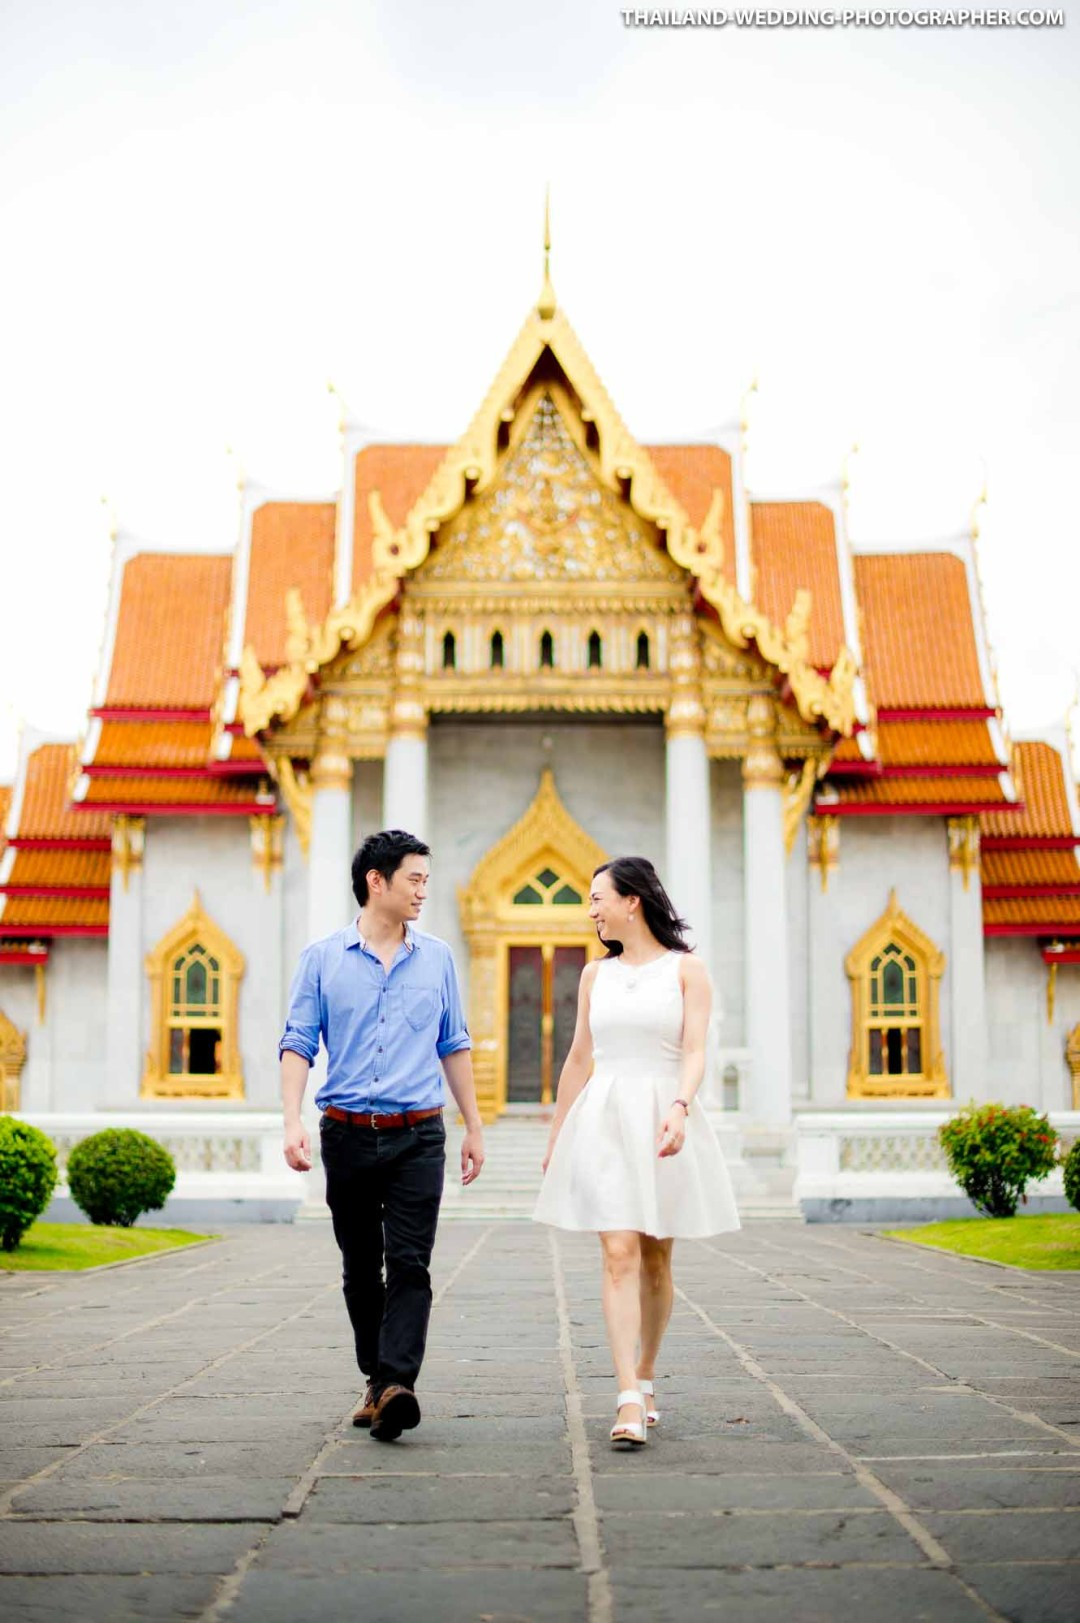 Thailand Bangkok Marble Temple Wedding Photography | NET-Photography Thailand Wedding Photographer